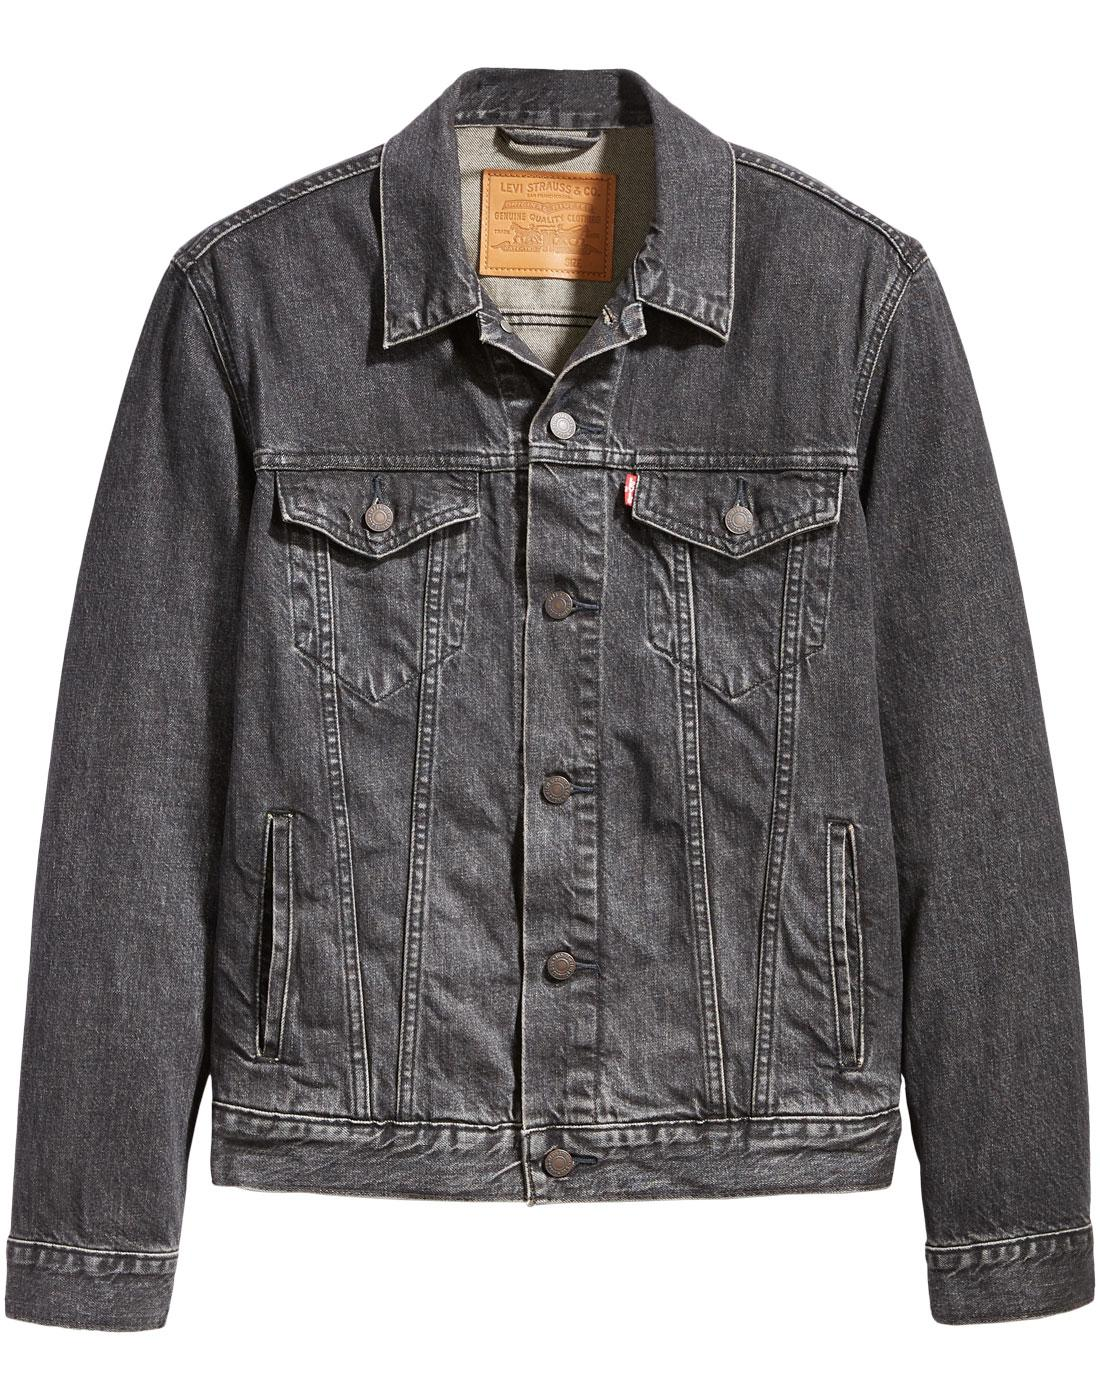 LEVI'S Men's Retro Mod Denim Trucker Jacket FEGIN